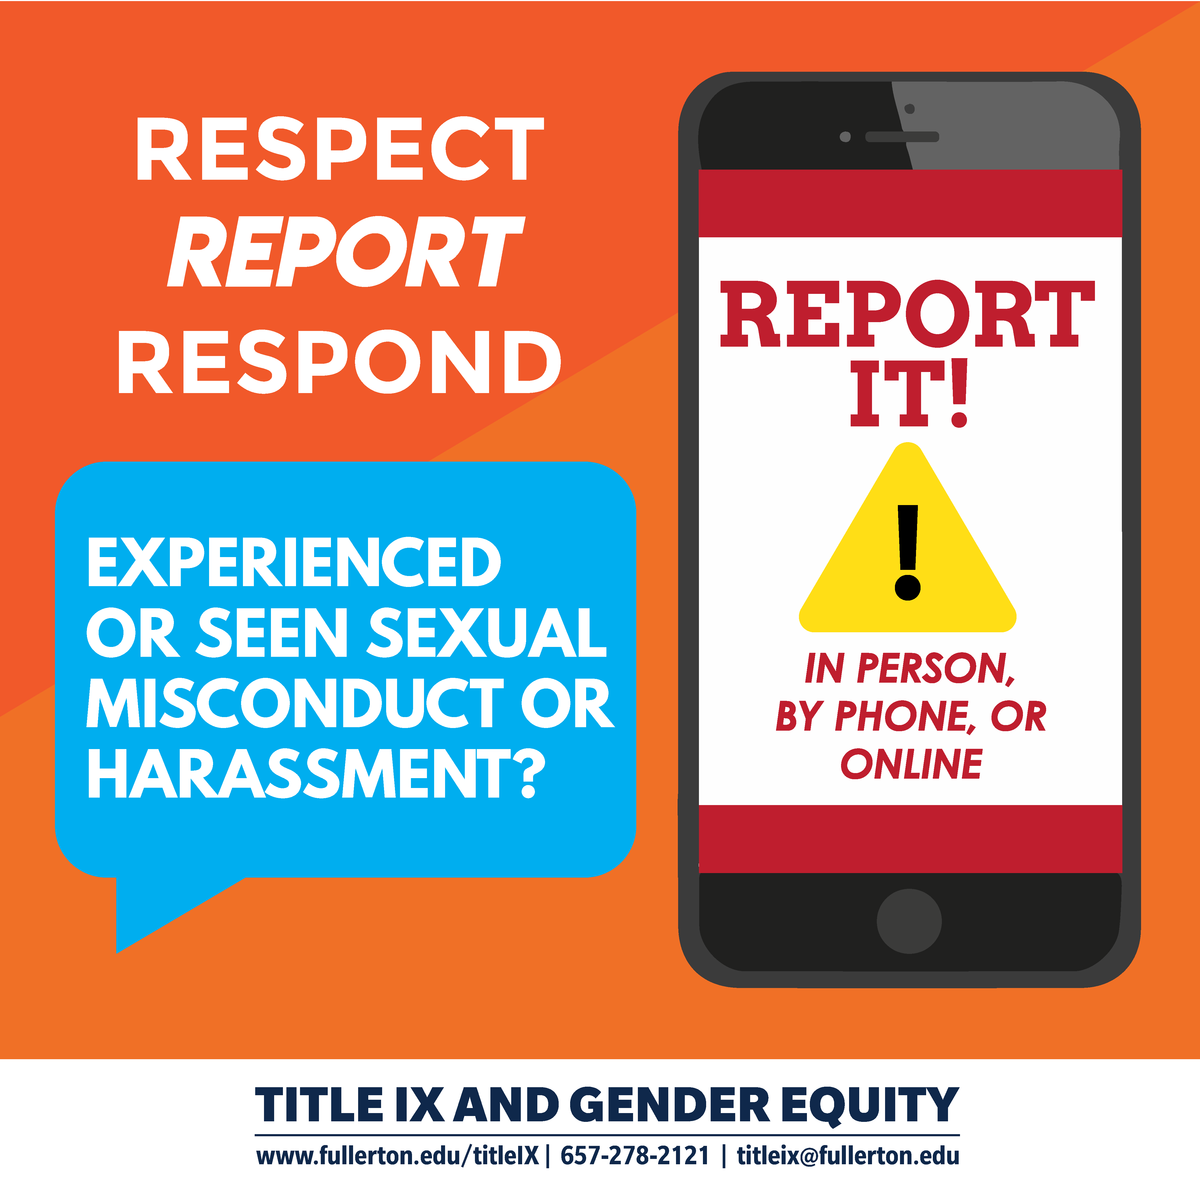 Experienced or seen sexual misconduct or harassment?  Report it by contacting Title IX and Gender Equity.